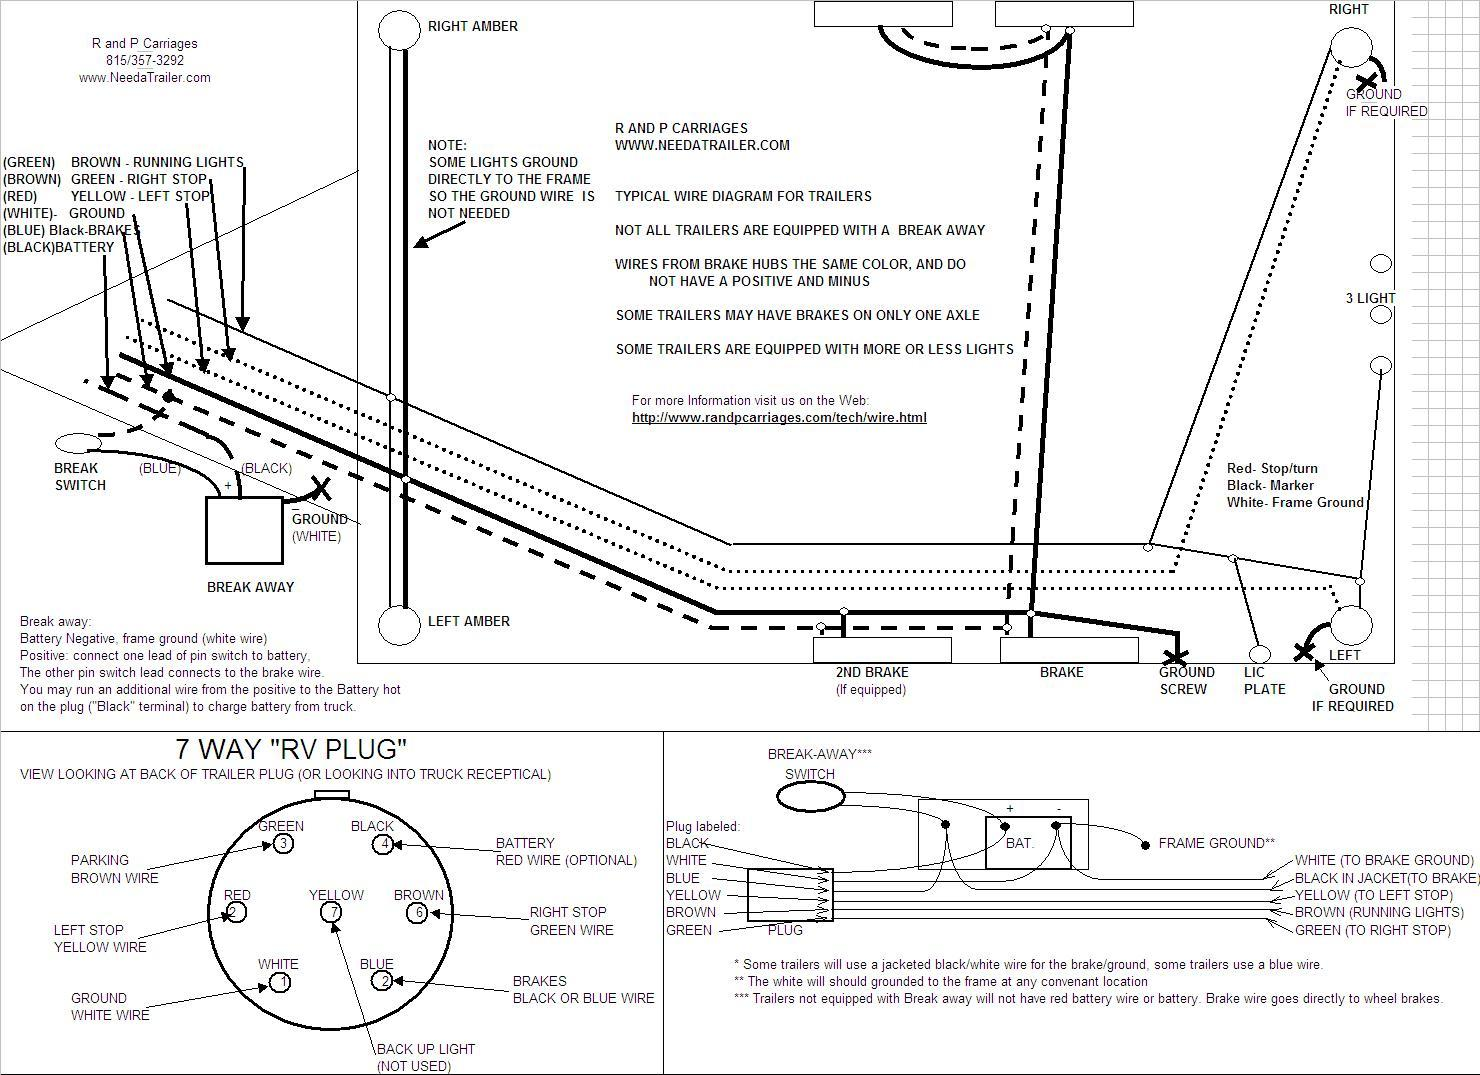 7 way wiring diagram brake controller installation instructions electric trailer jack wiring diagram at bayanpartner.co